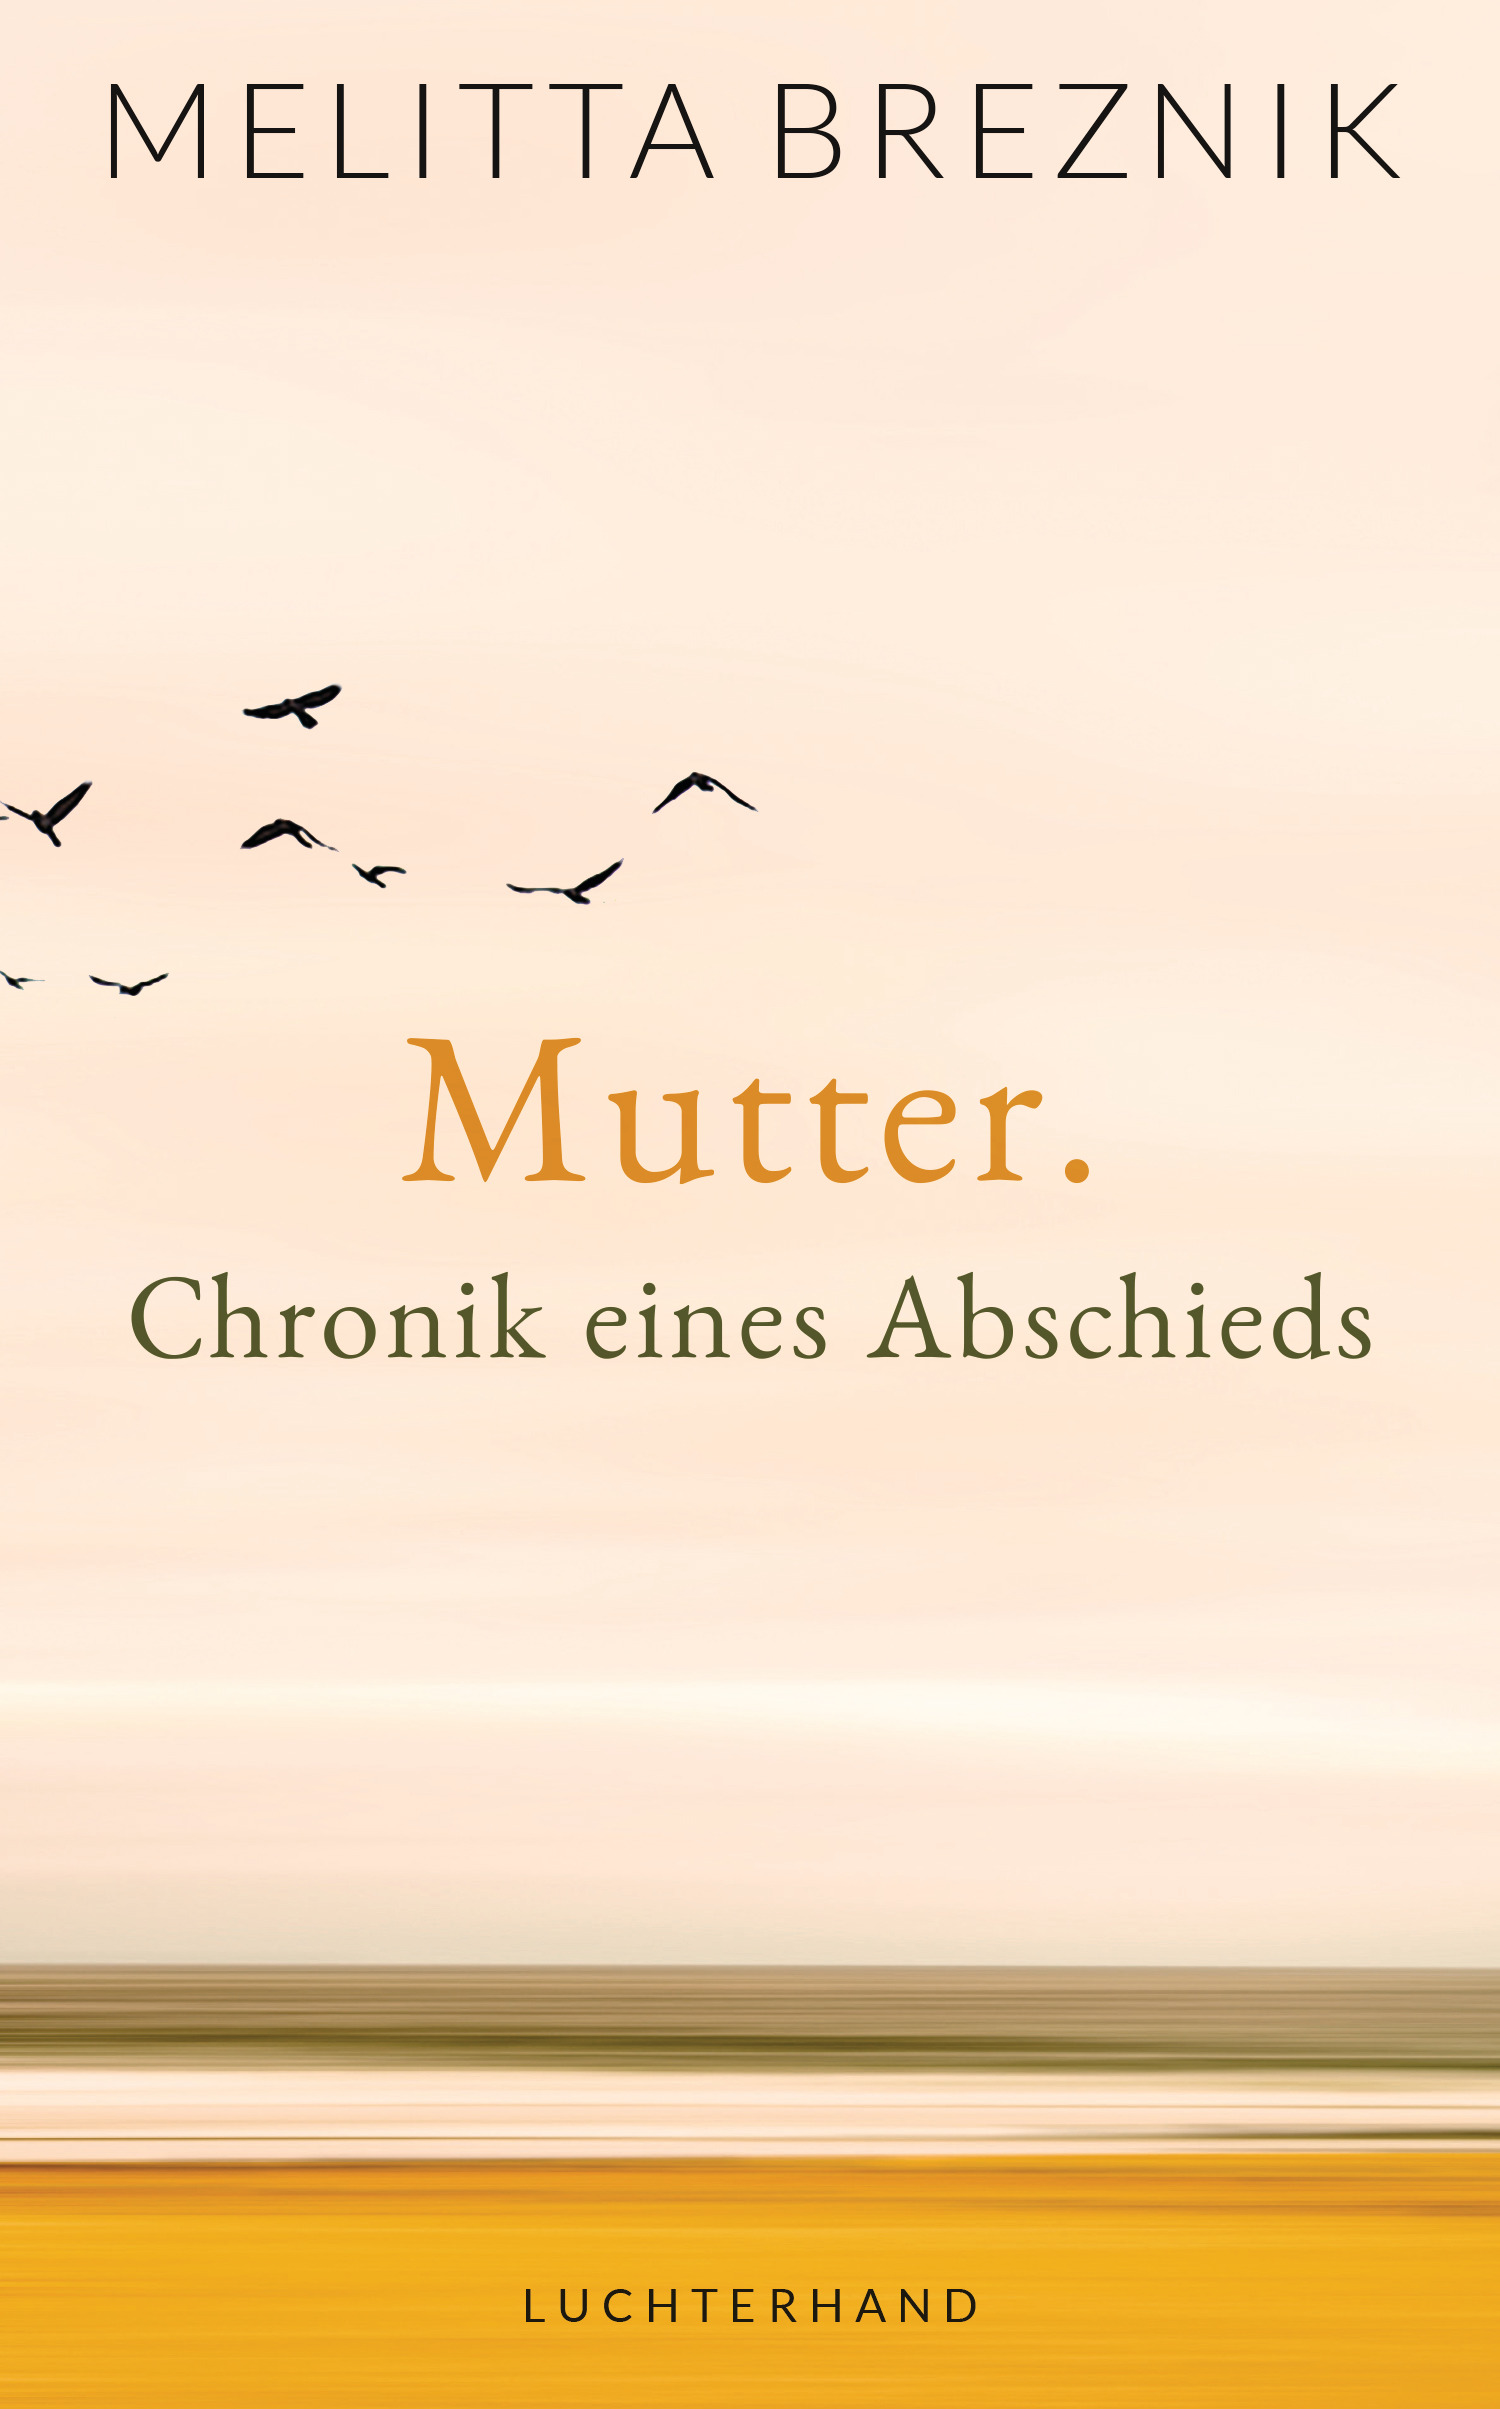 Mutter - Chronik eines Abschieds